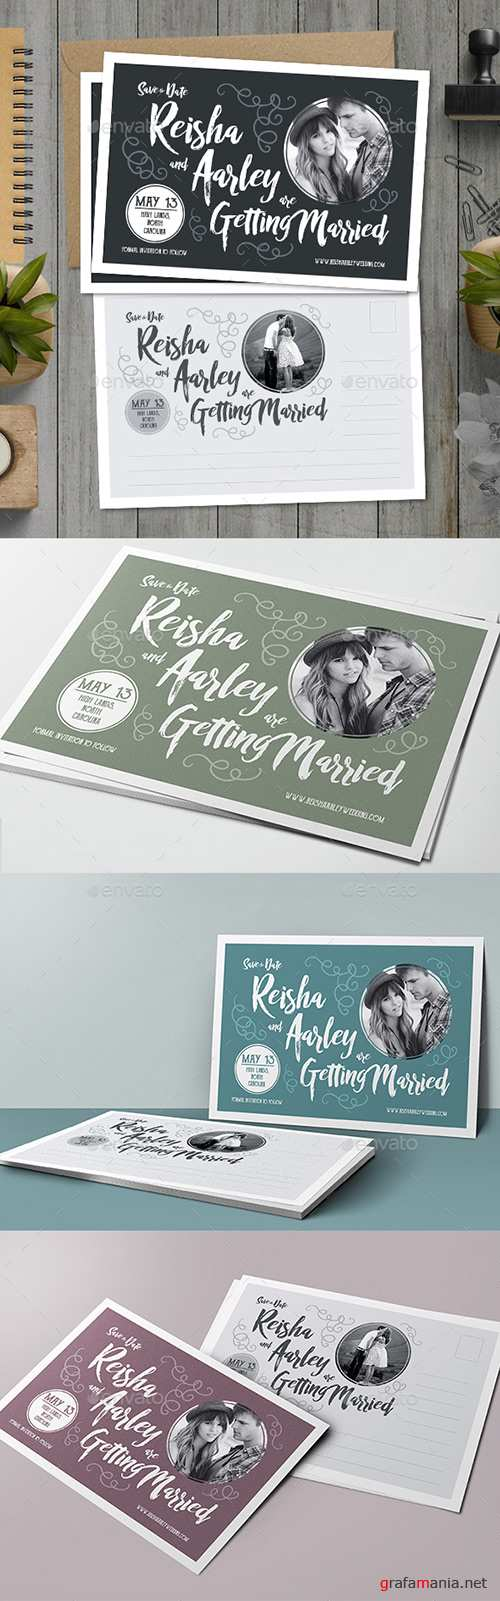 Graphicriver - Save the Date Post Card 18299259